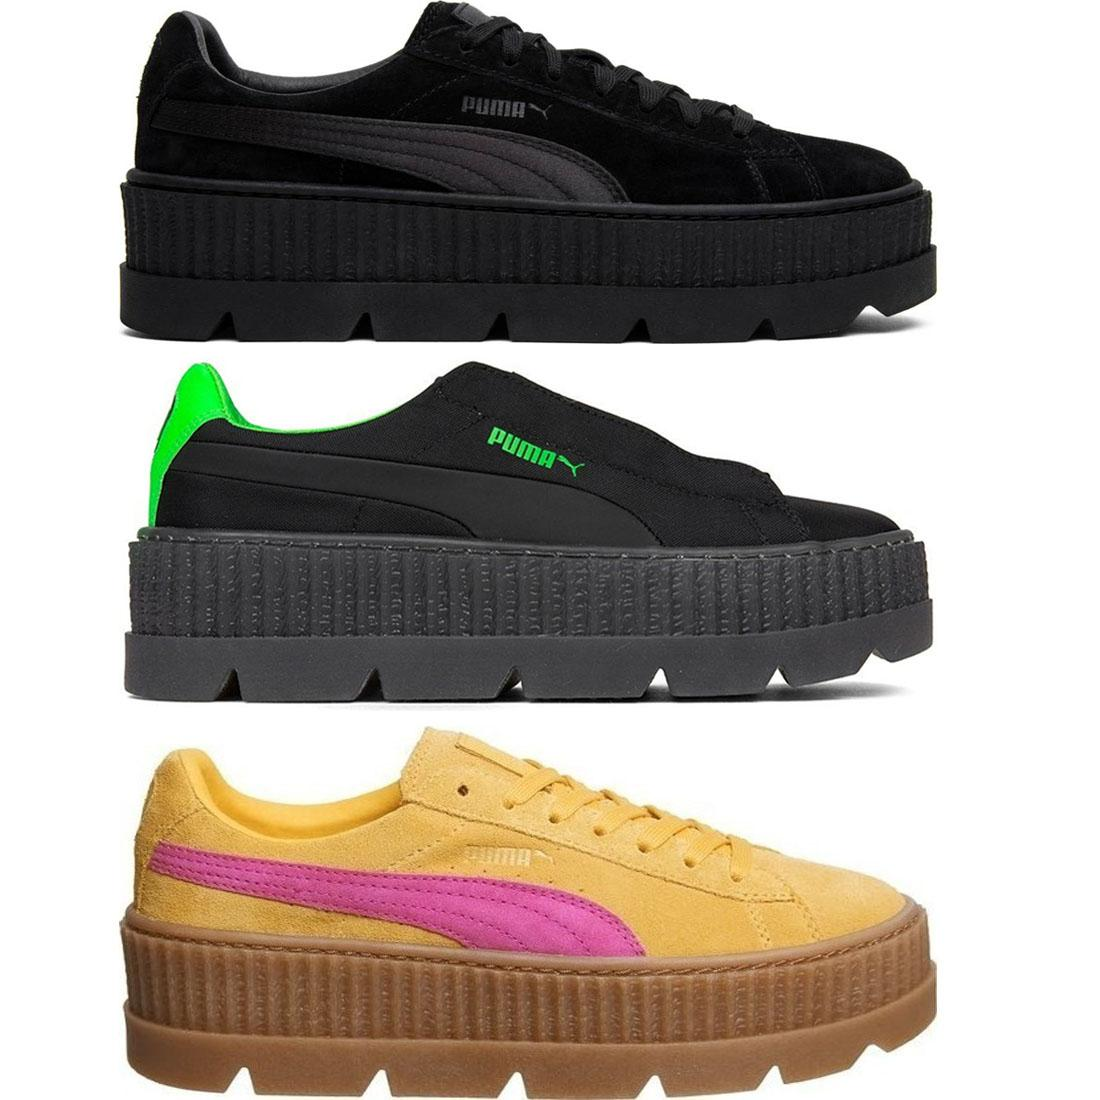 buy popular c9fc8 ef62a Details about PUMA Fenty X Rihanna Cleated Creeper Ladies Suede Black Green  Yellow Trainers